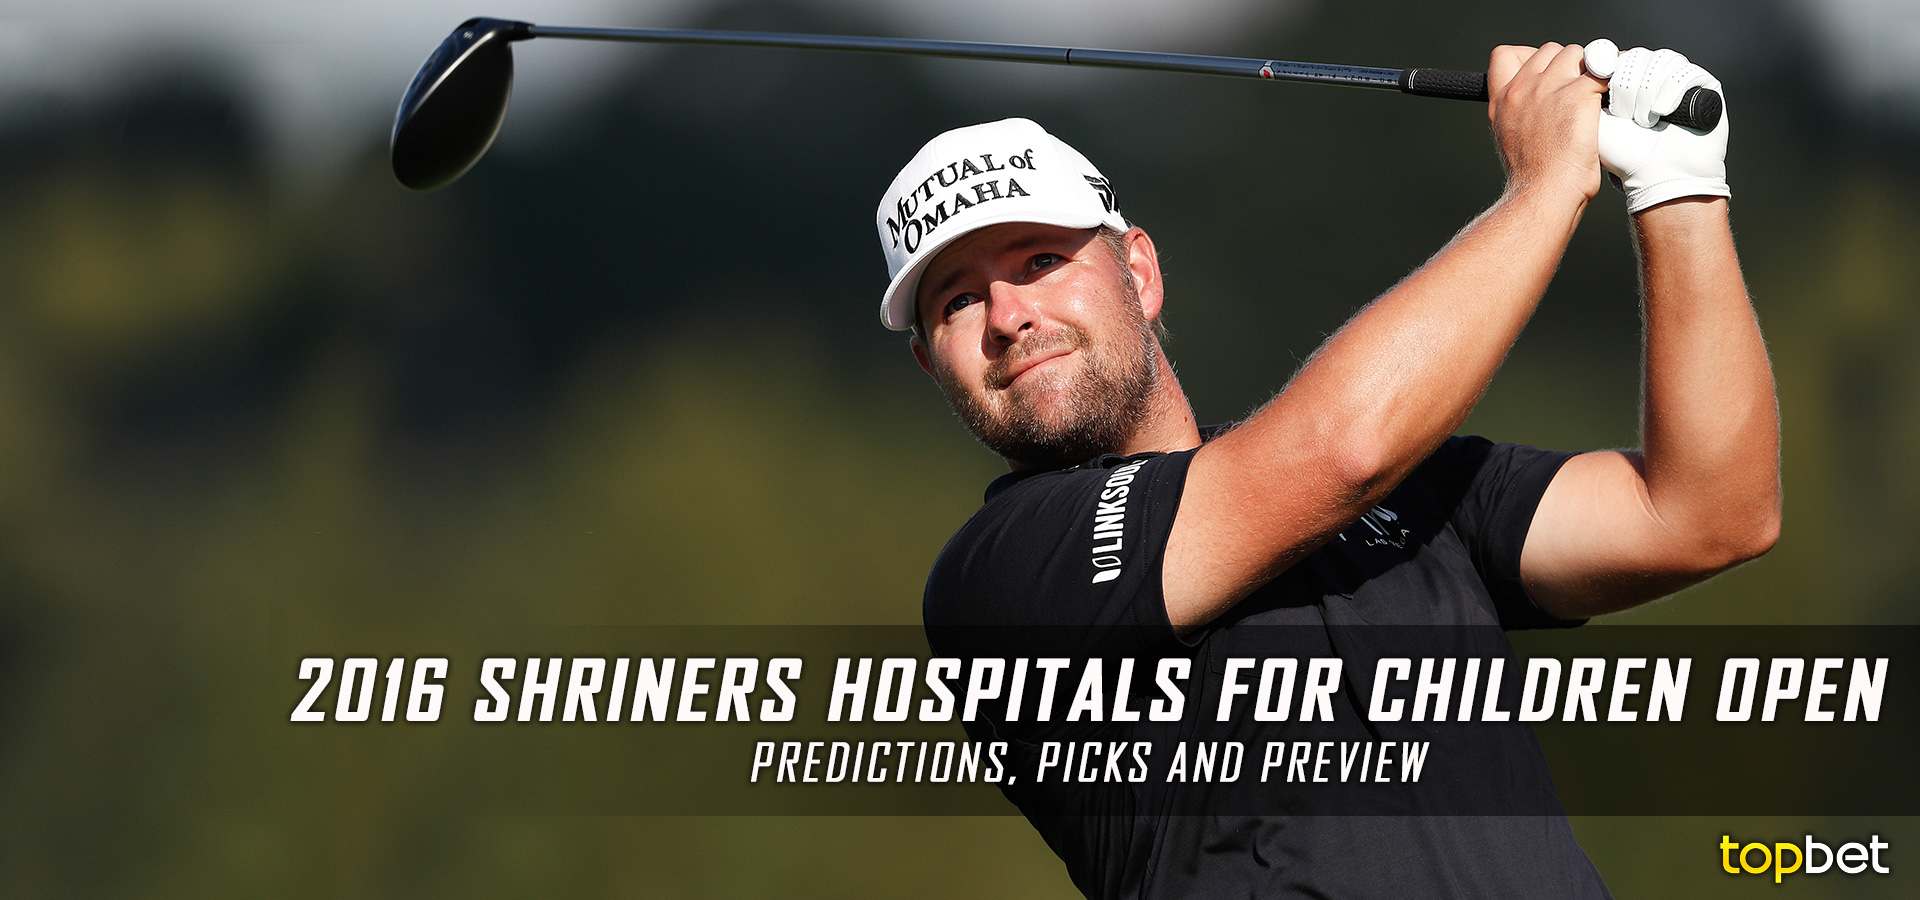 2016 Shriners Hospitals For Children Open Predictions Odds